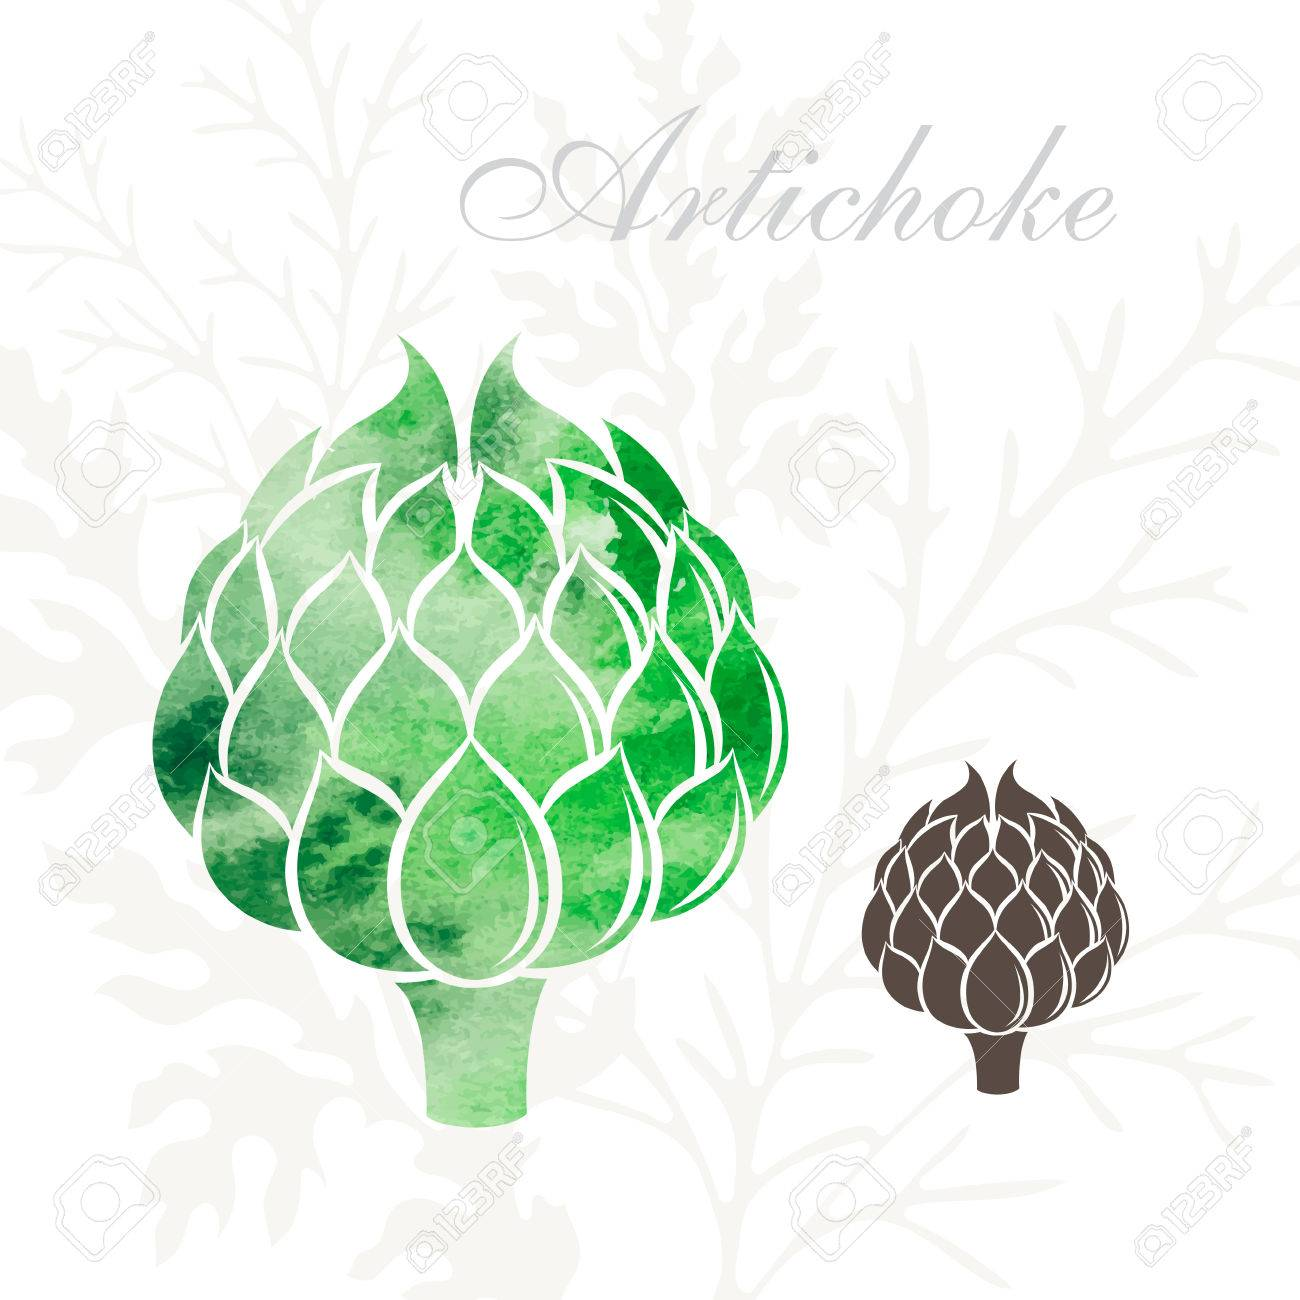 Artichoke icons set. Vegetables icon with watercolor texture - 57484285